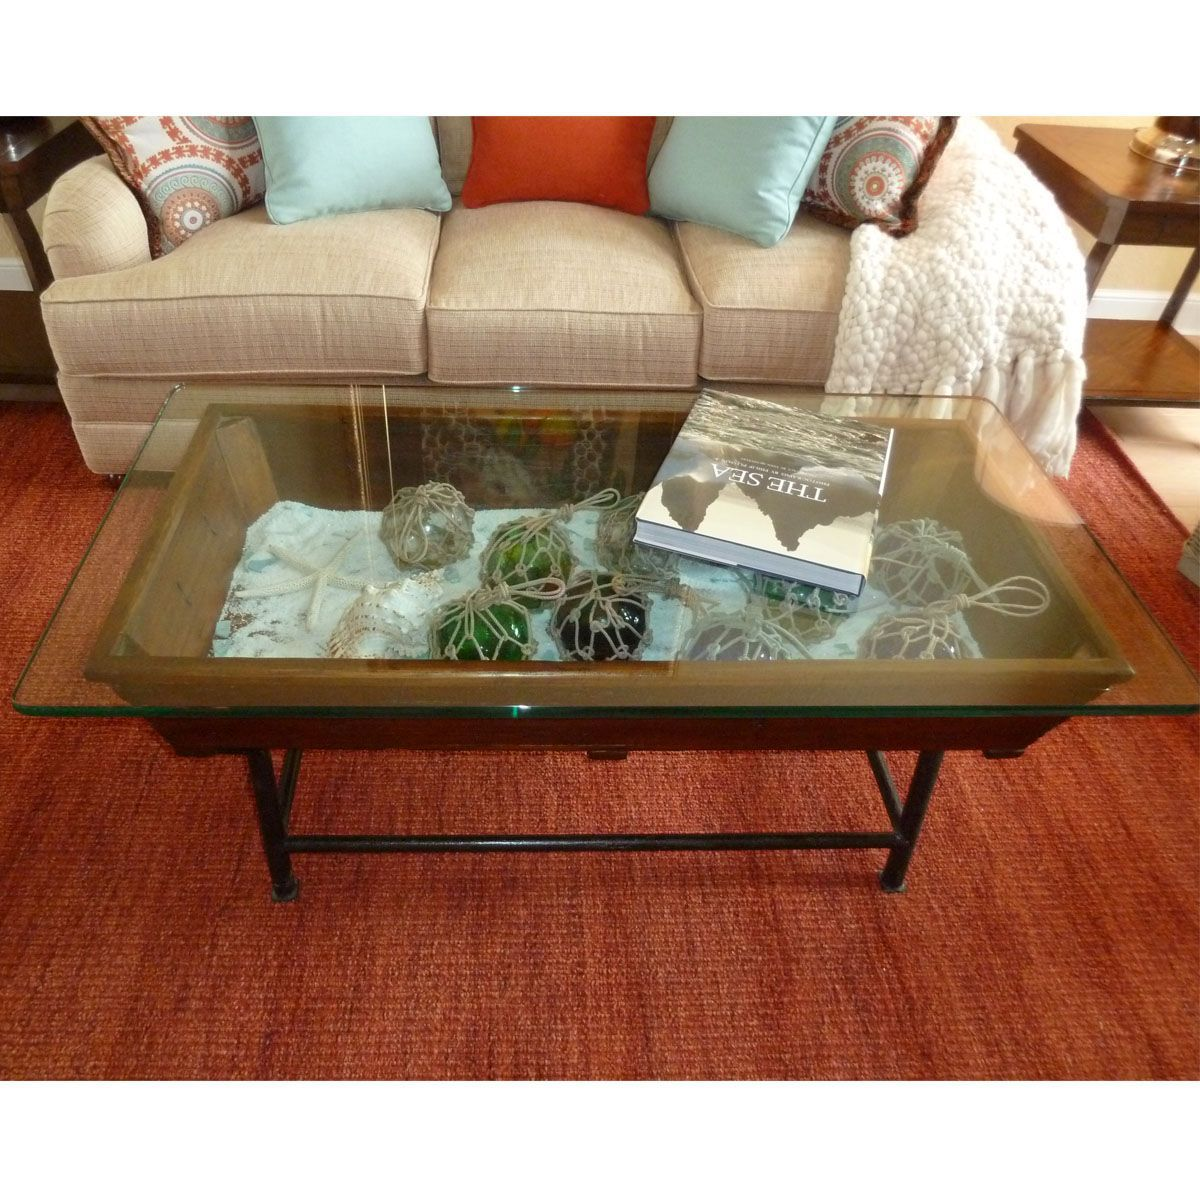 Saramar Old Trough With Glass Top Coffee Table 29 W X 22 H X 58 L 58 W X 29 D X 22 H Display Coffee Table Coffee Table Living Room Coffee Table [ 1200 x 1200 Pixel ]